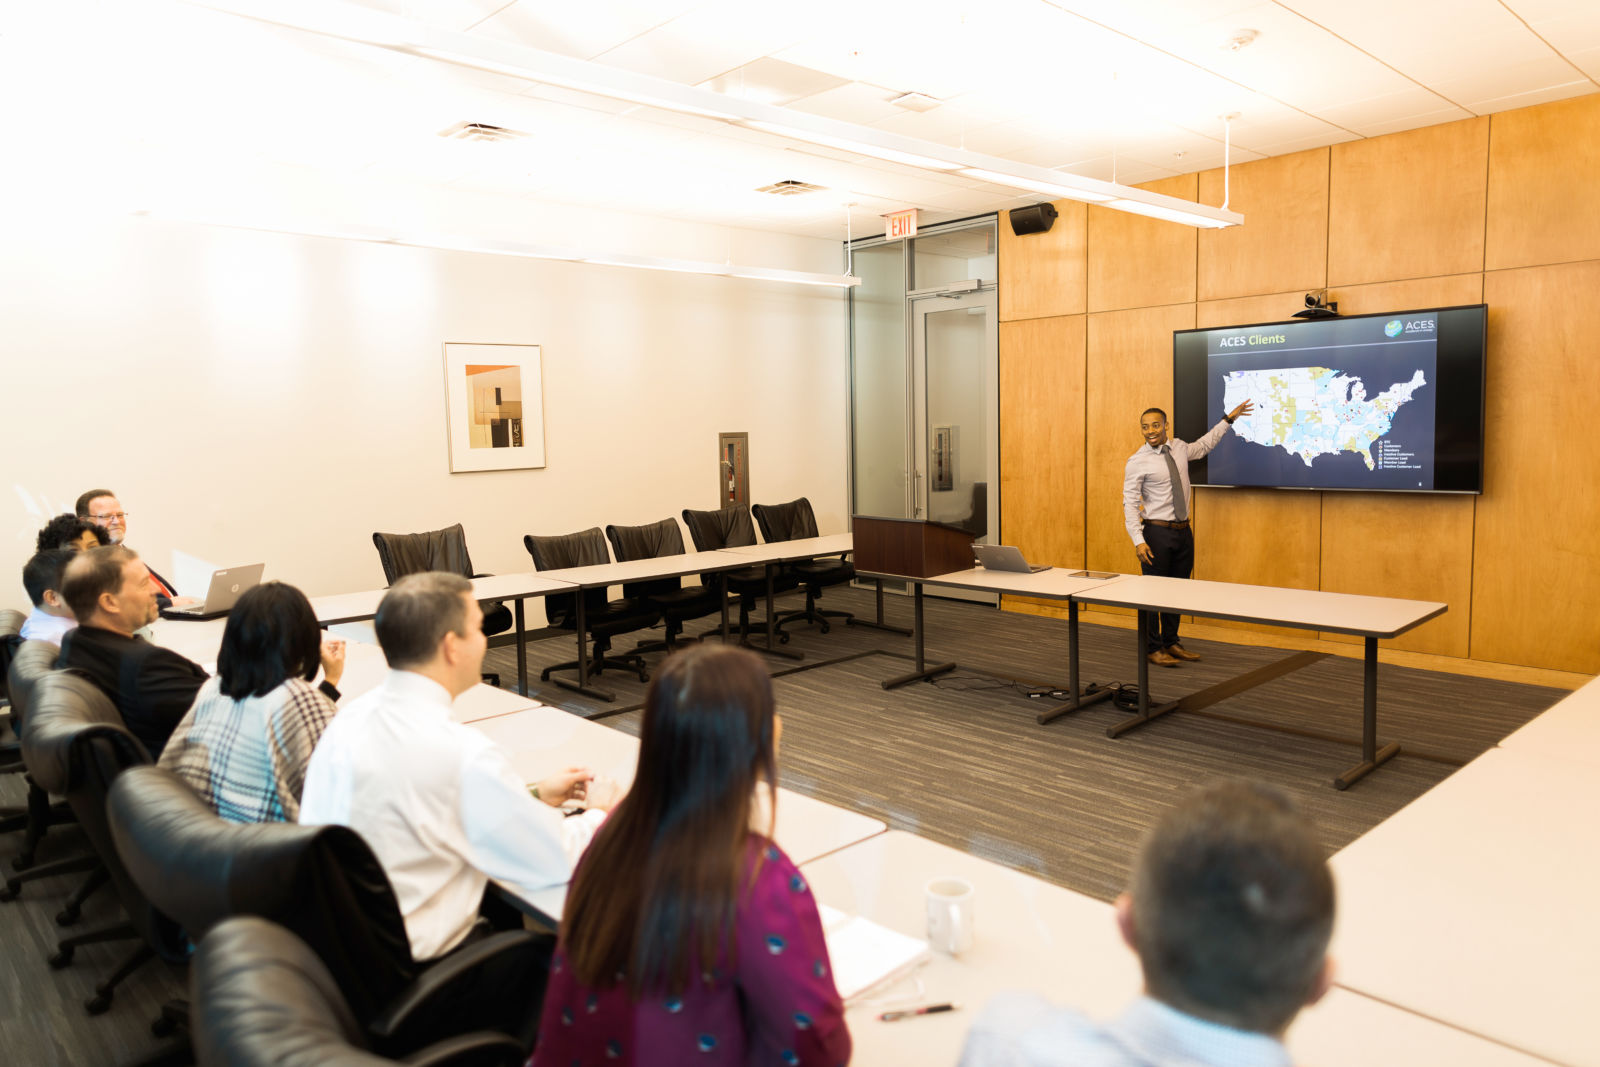 a presenter shows a slide on a TV screen to a group of people sitting at a table